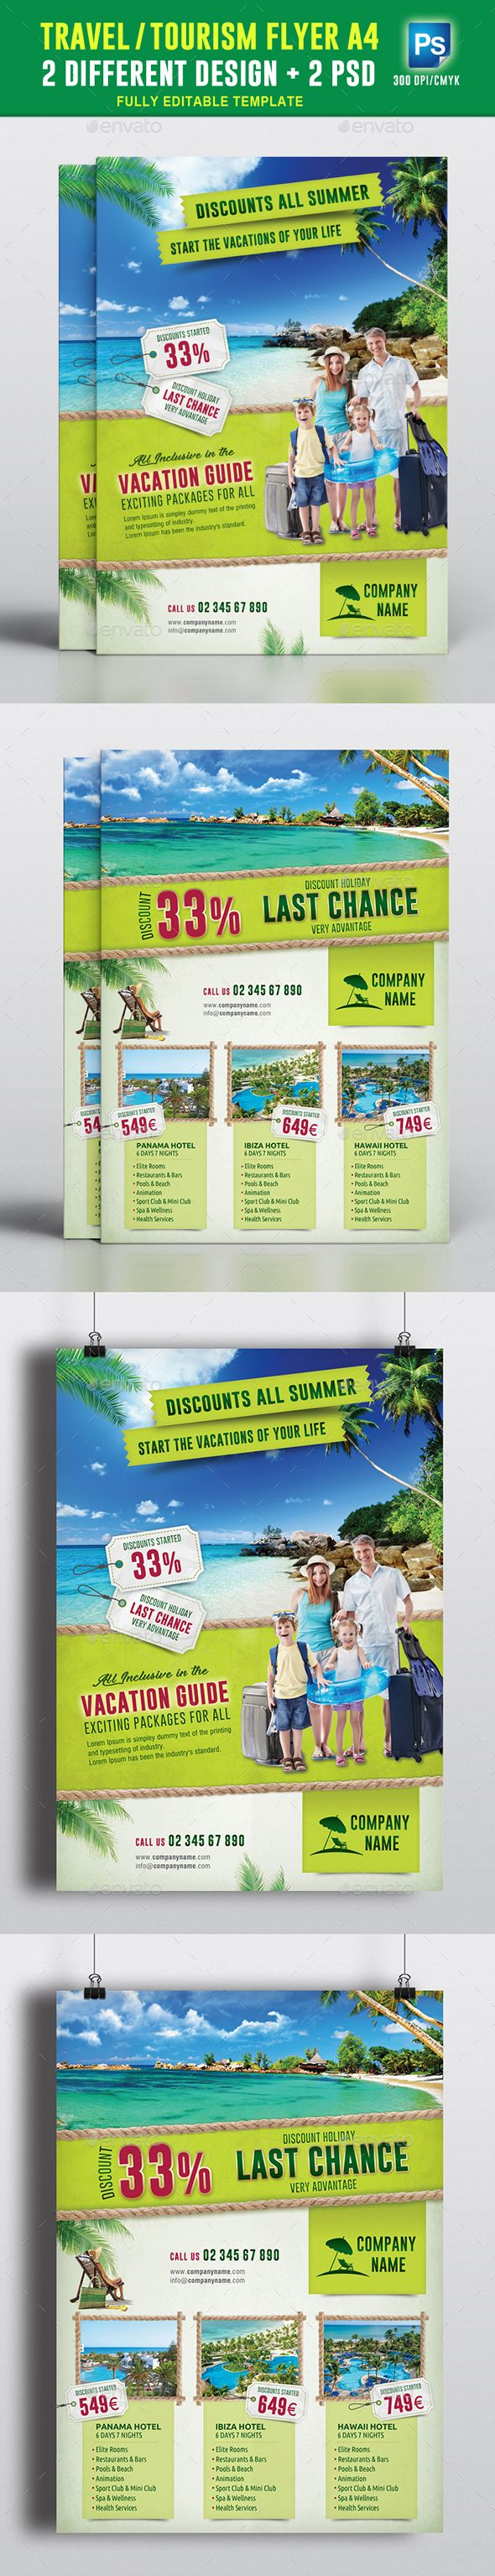 Travel Tourism Flyer Vol 01 Tourism Flyer Template And Template